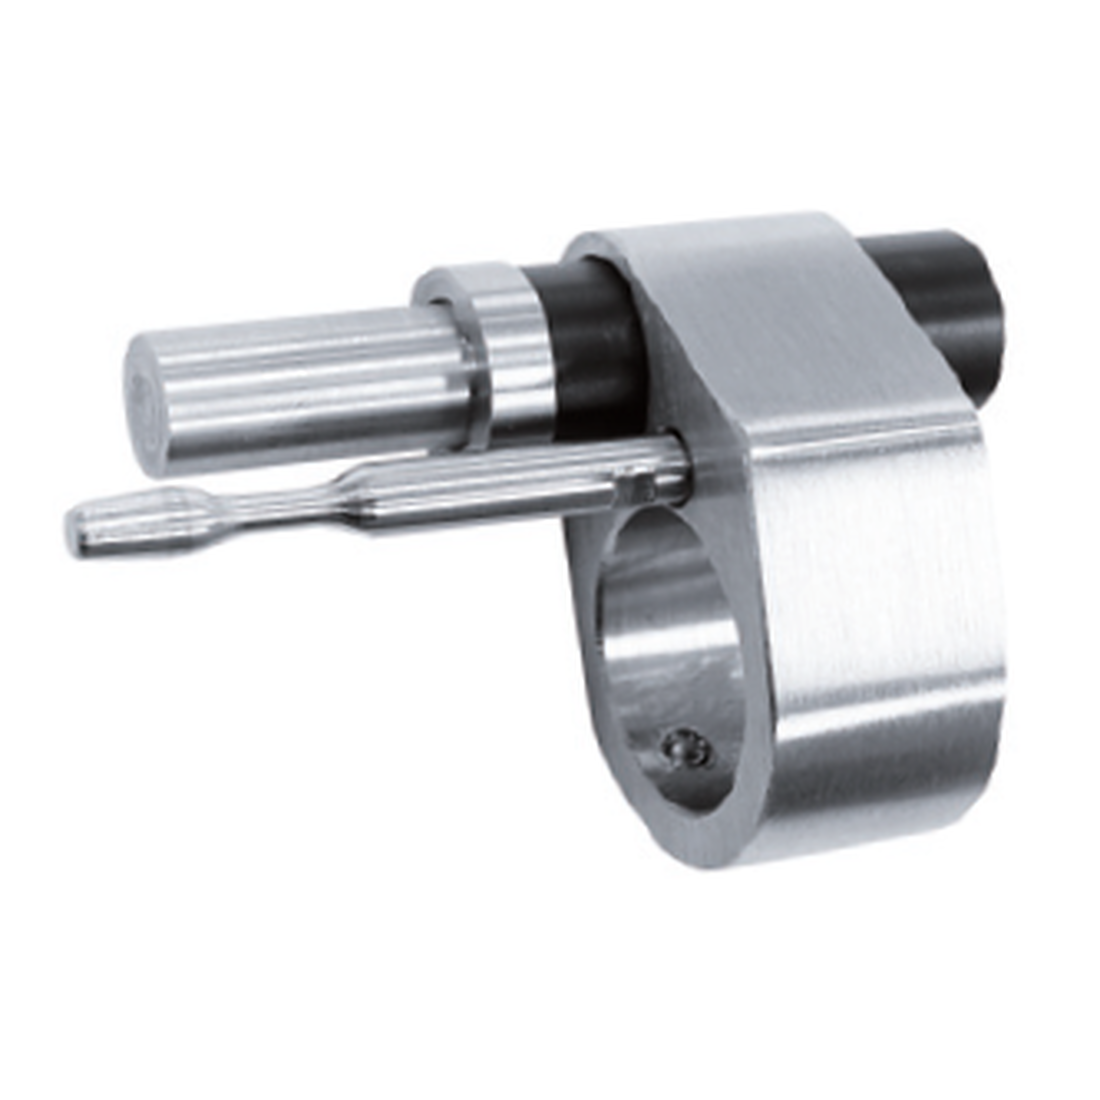 SOFTSTOP DAMPER FOR FLATEC VI AND FLATEC IV, MAX 75 LBS (34 KG)